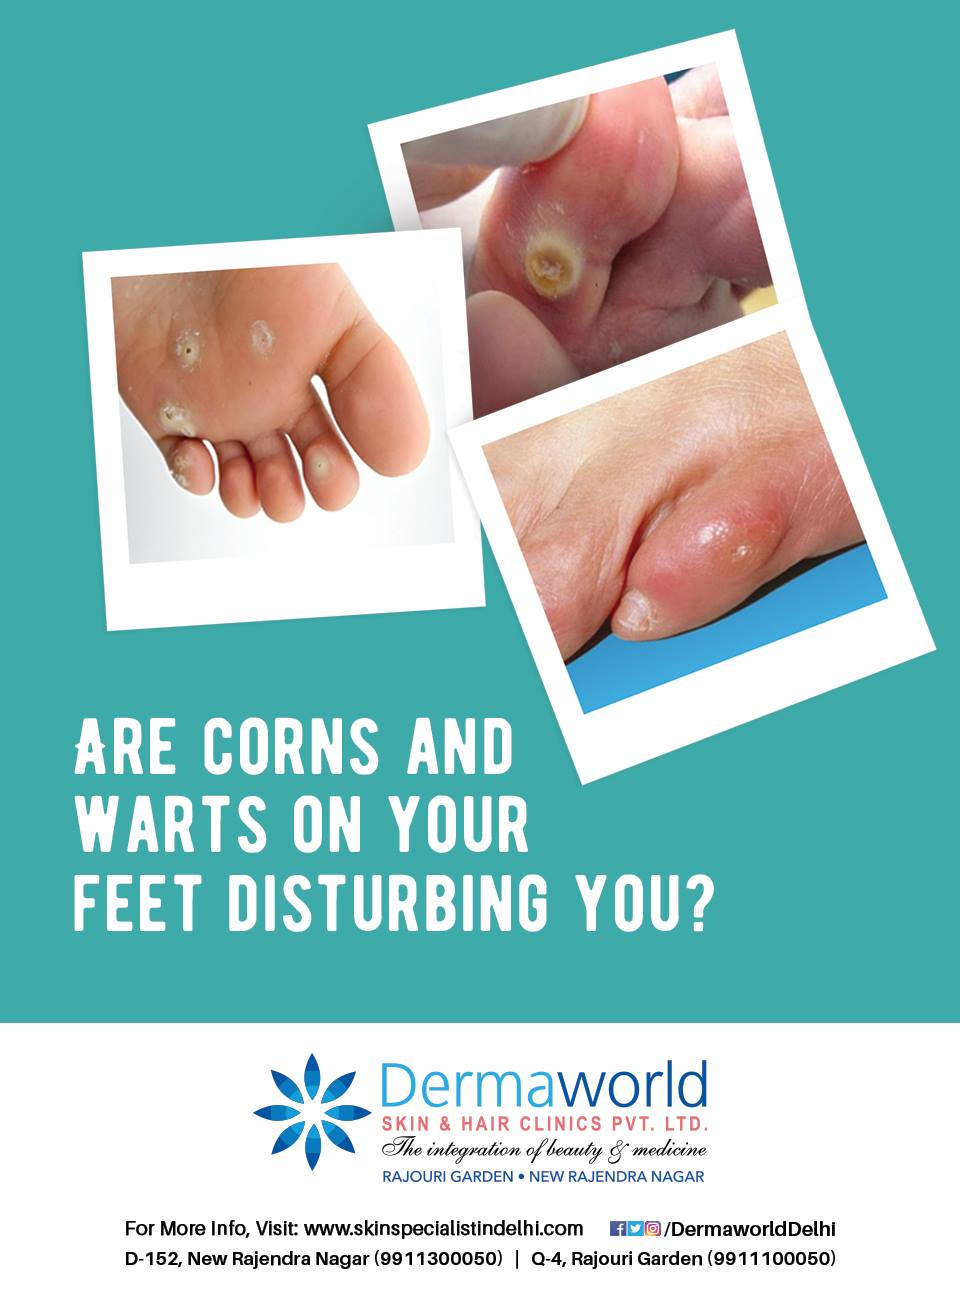 Best treatment for warts & corns